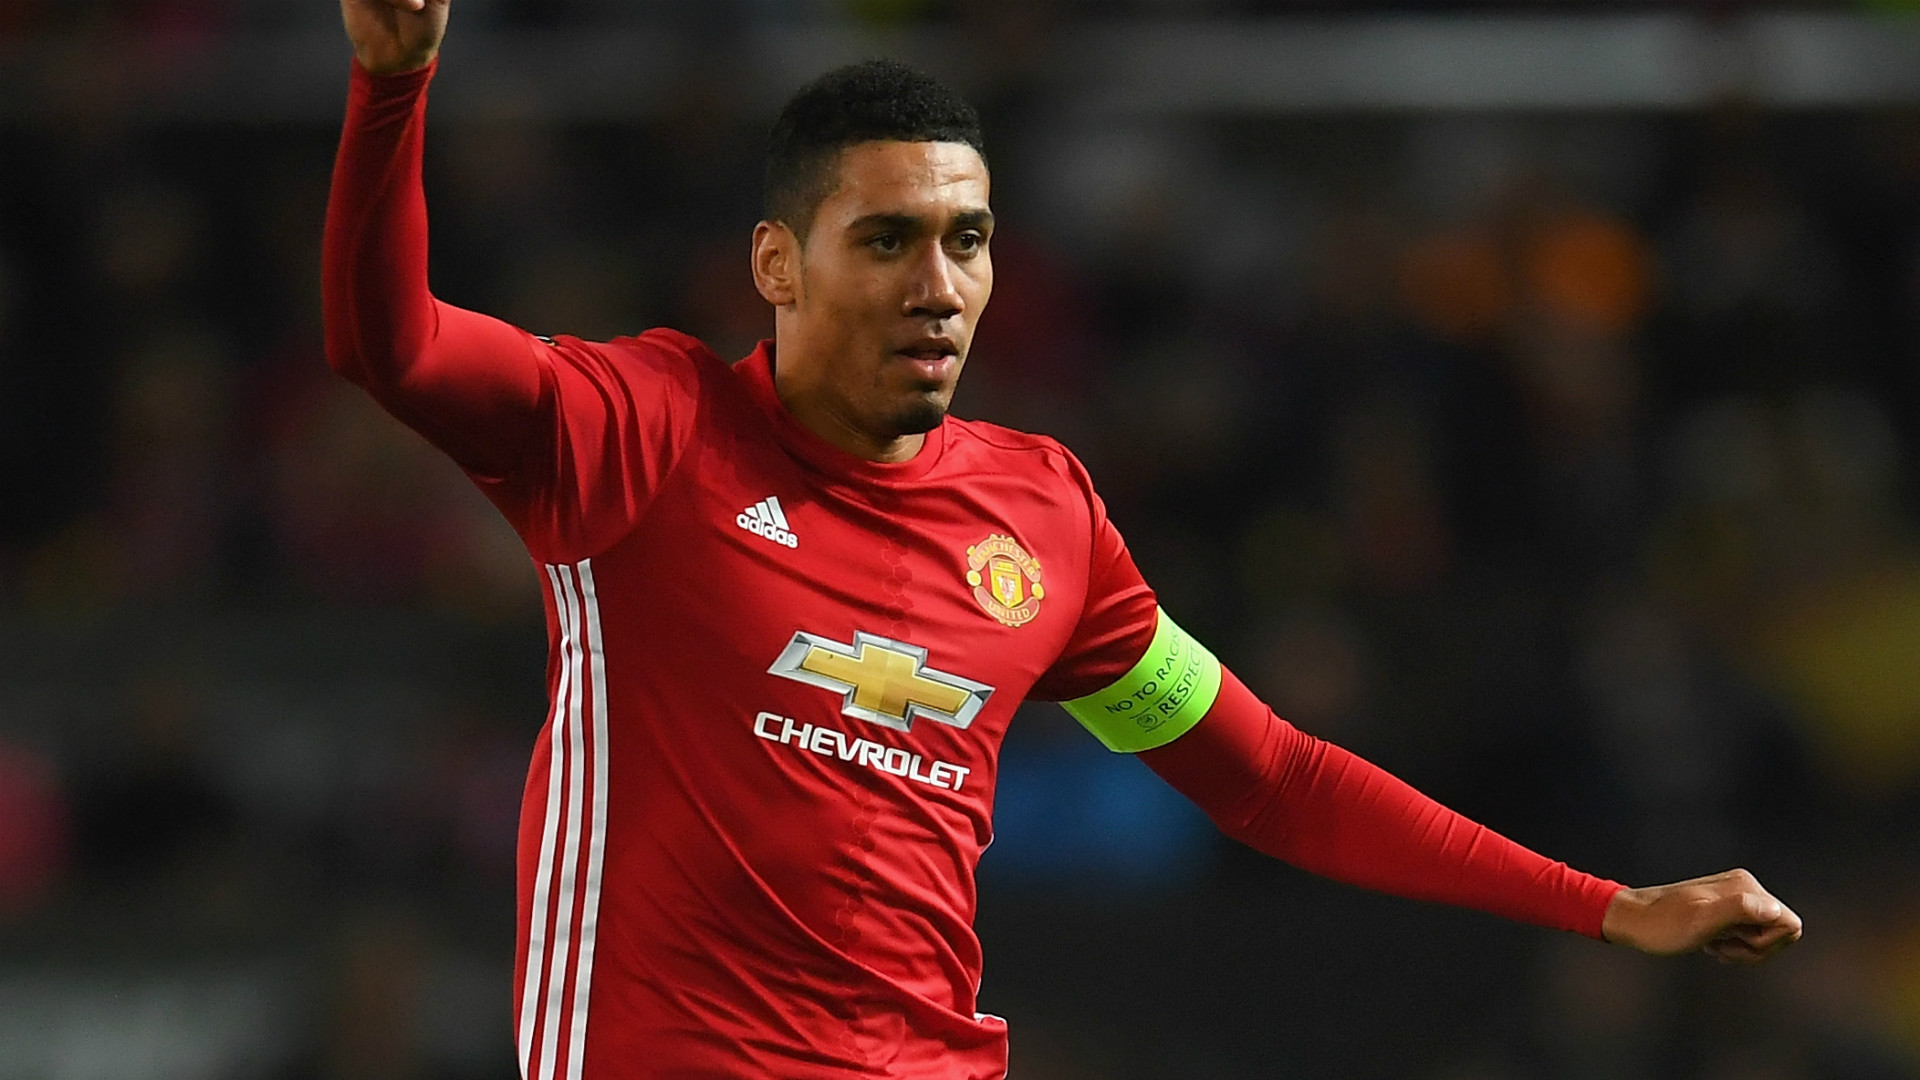 Neville XI Chris Smalling